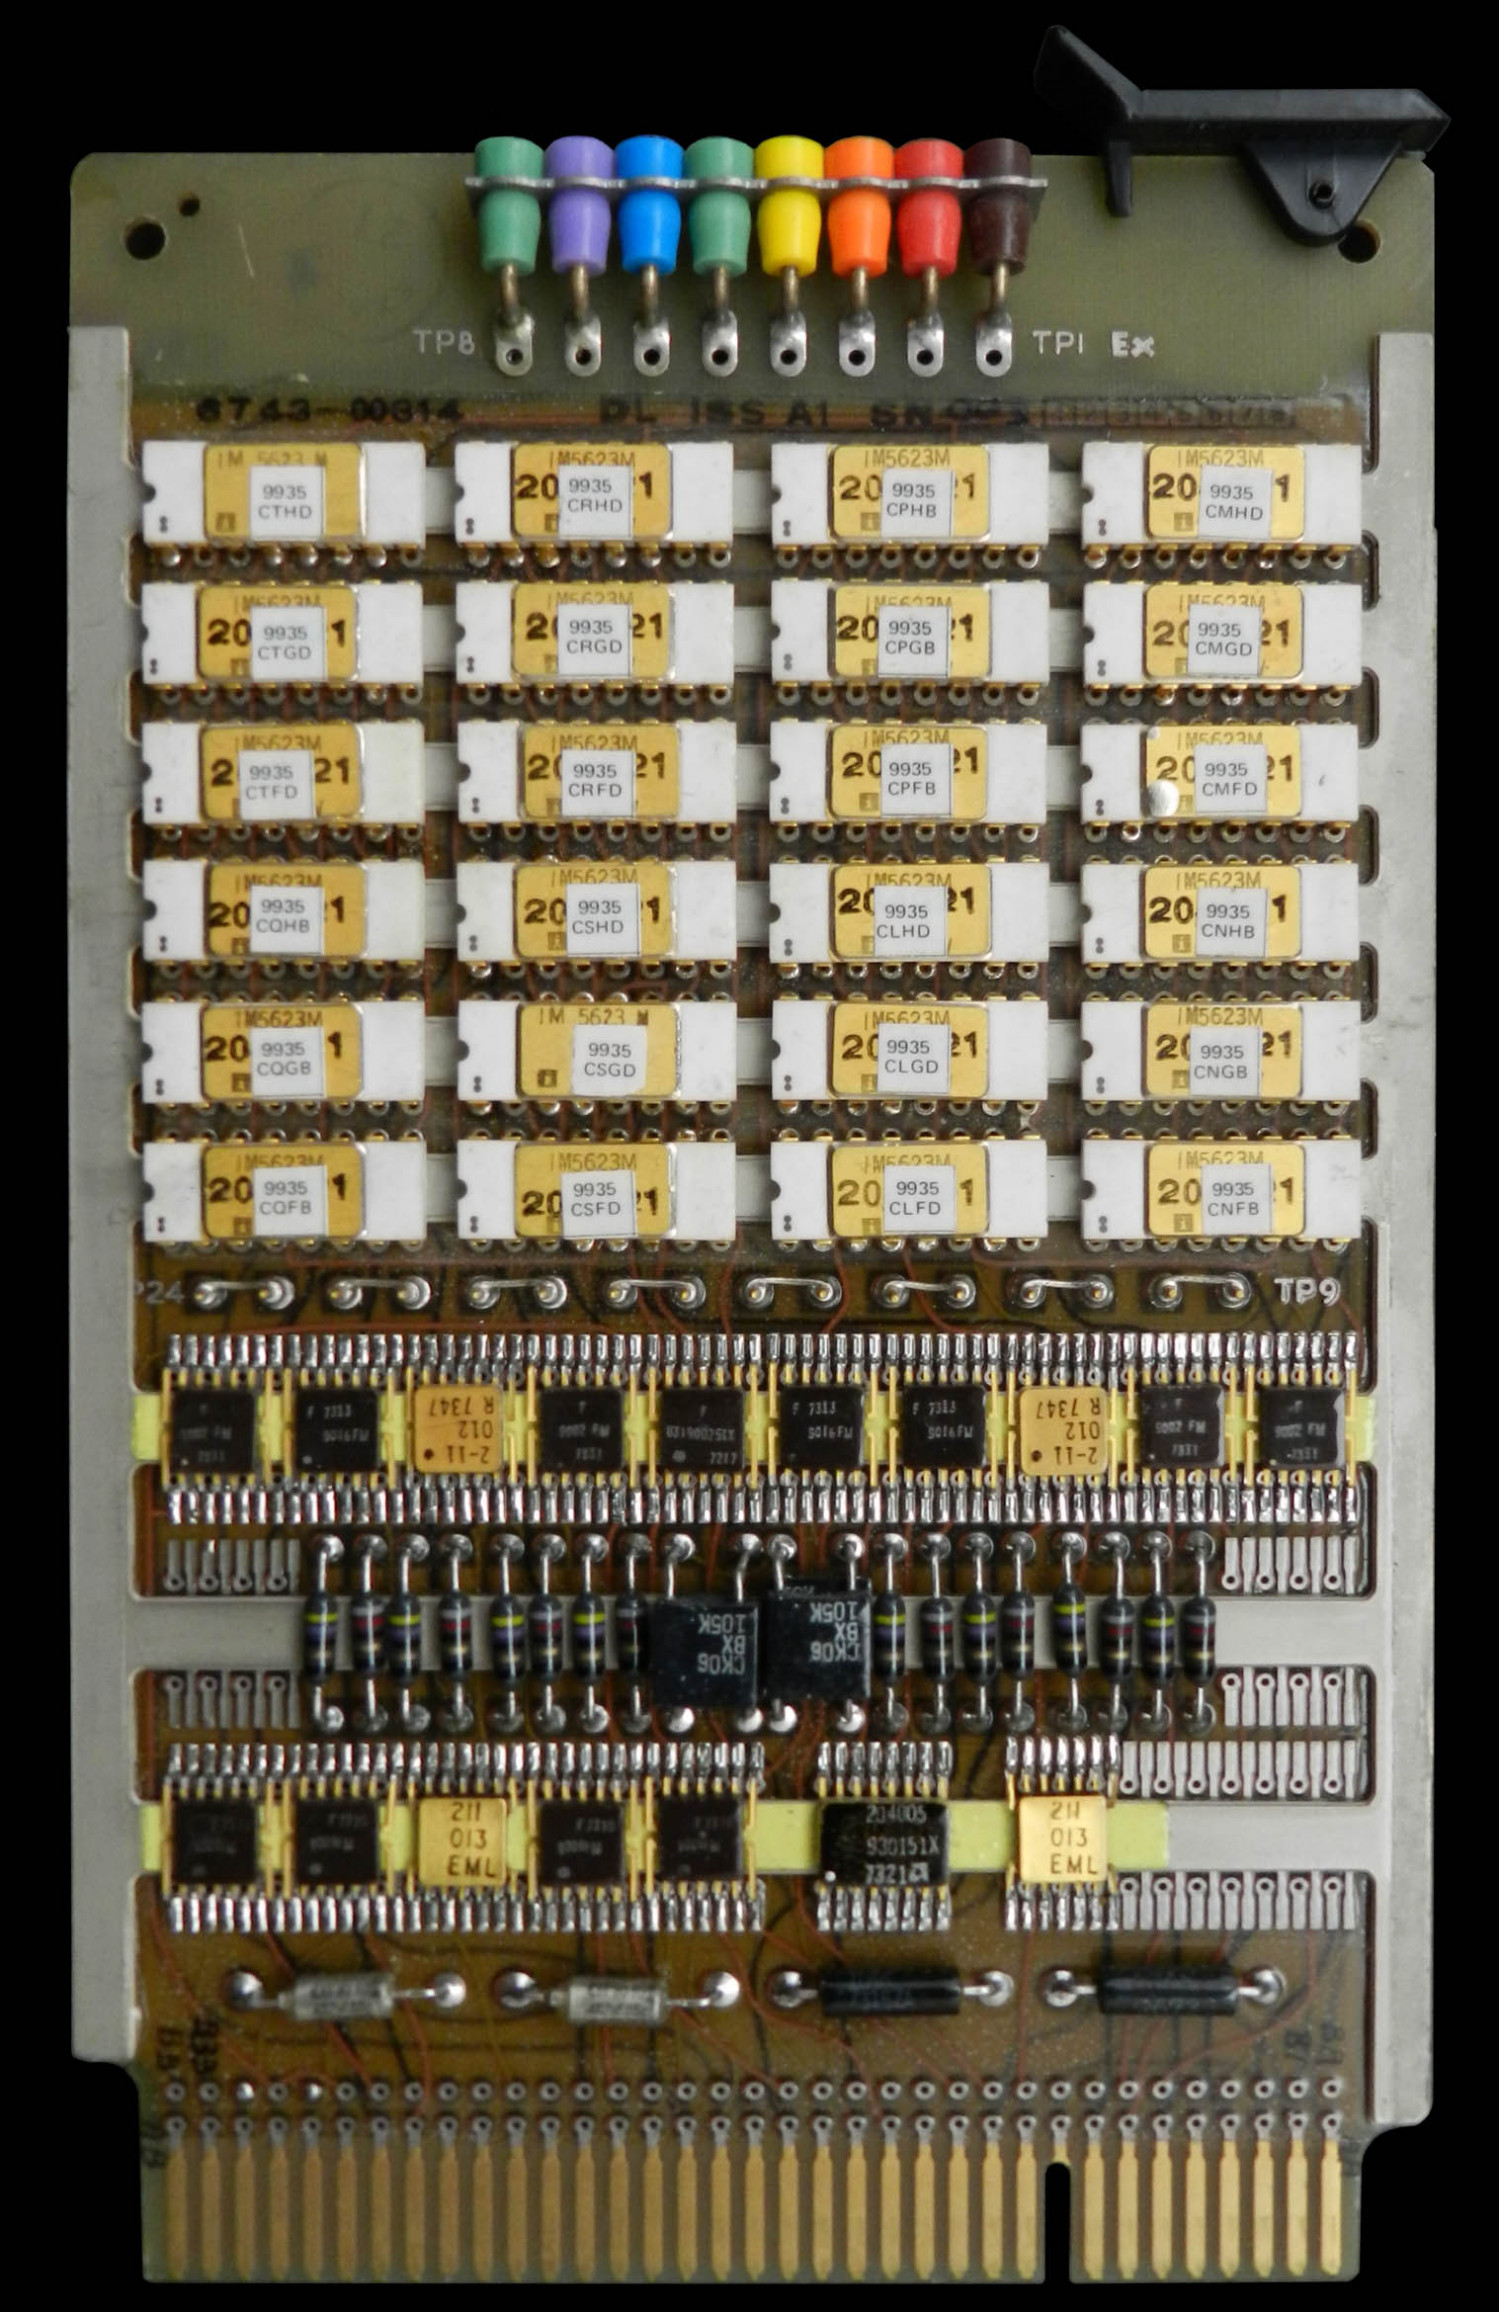 NCS1 Program Store Circuit Board